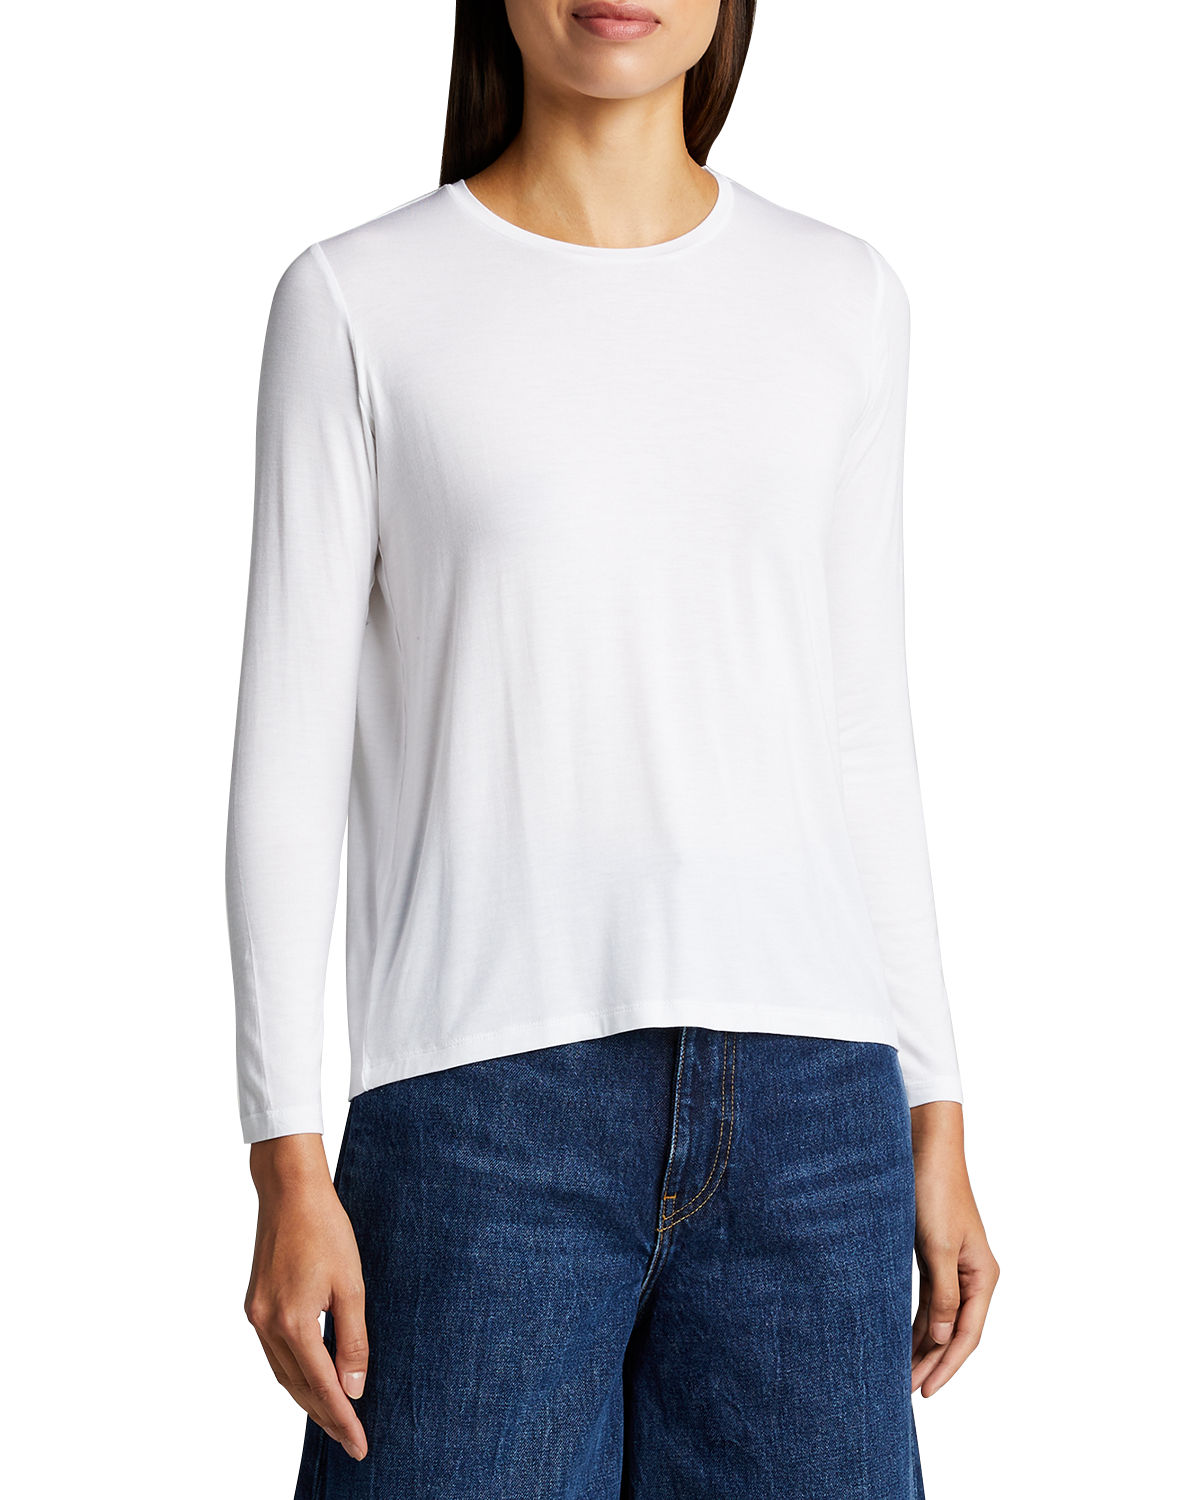 Majestic SOFT TOUCH CREWNECK LONG-SLEEVE TOP W/ BACK PLEAT